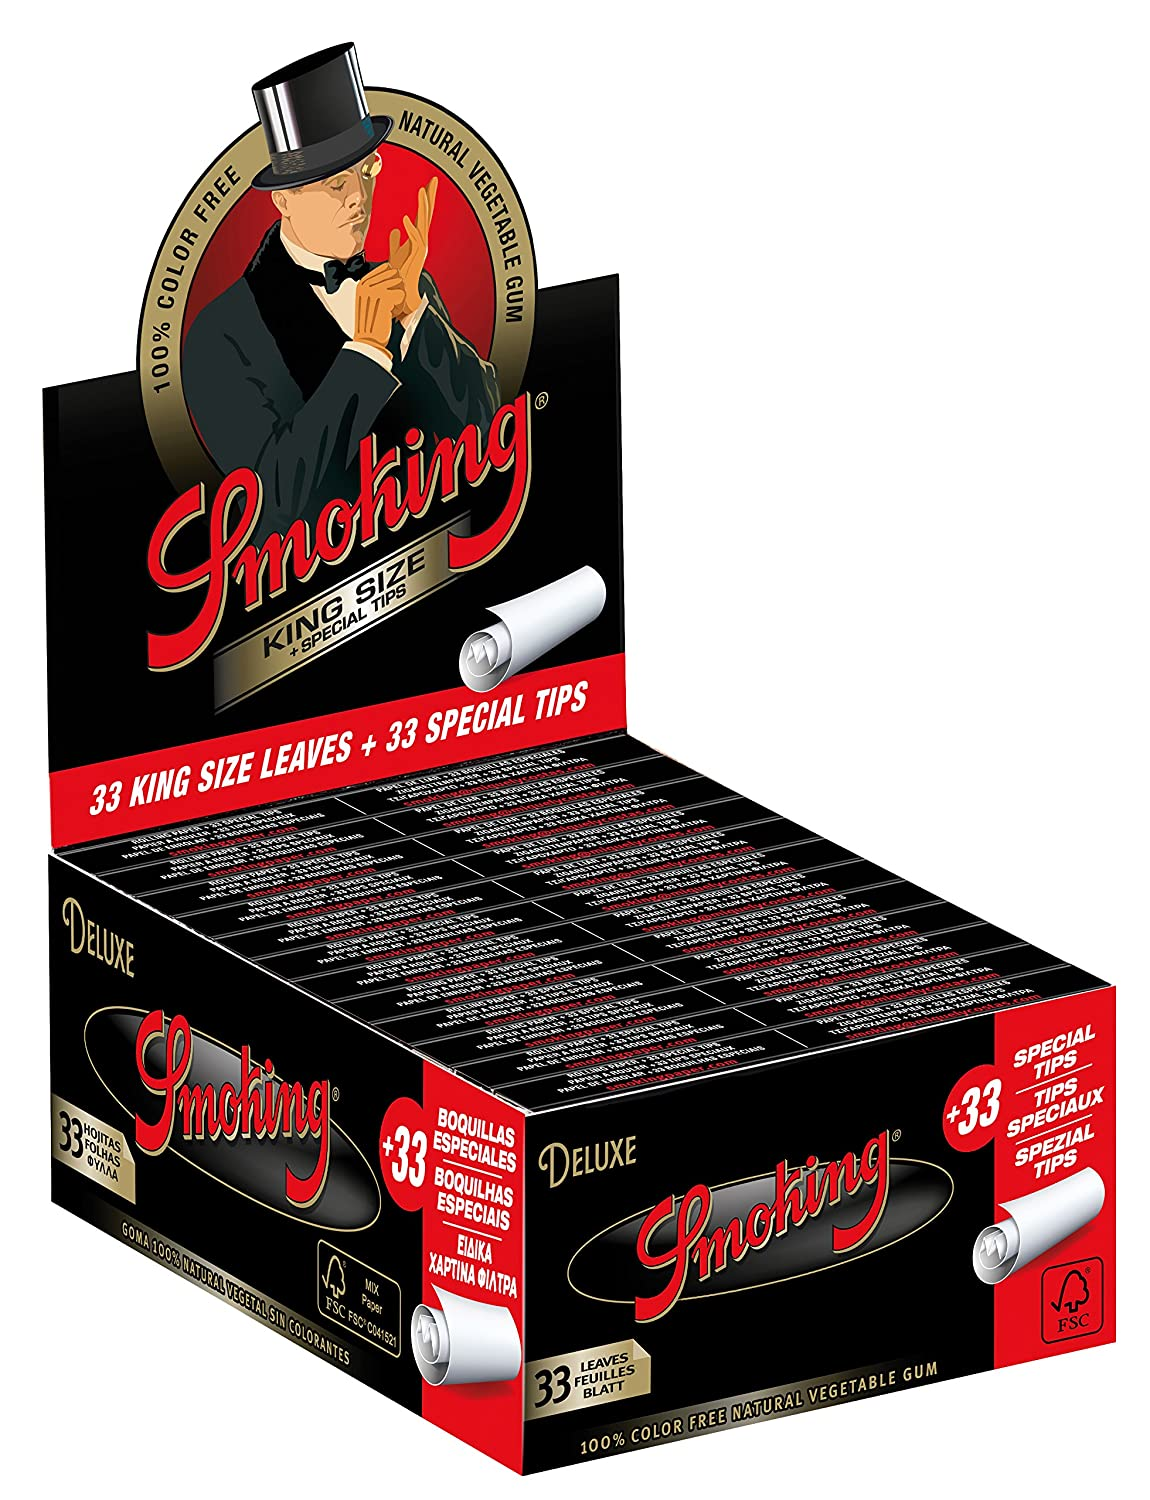 Amazon com: 24 Smoking Brand Deluxe With TIPS Ultra Fine King Size